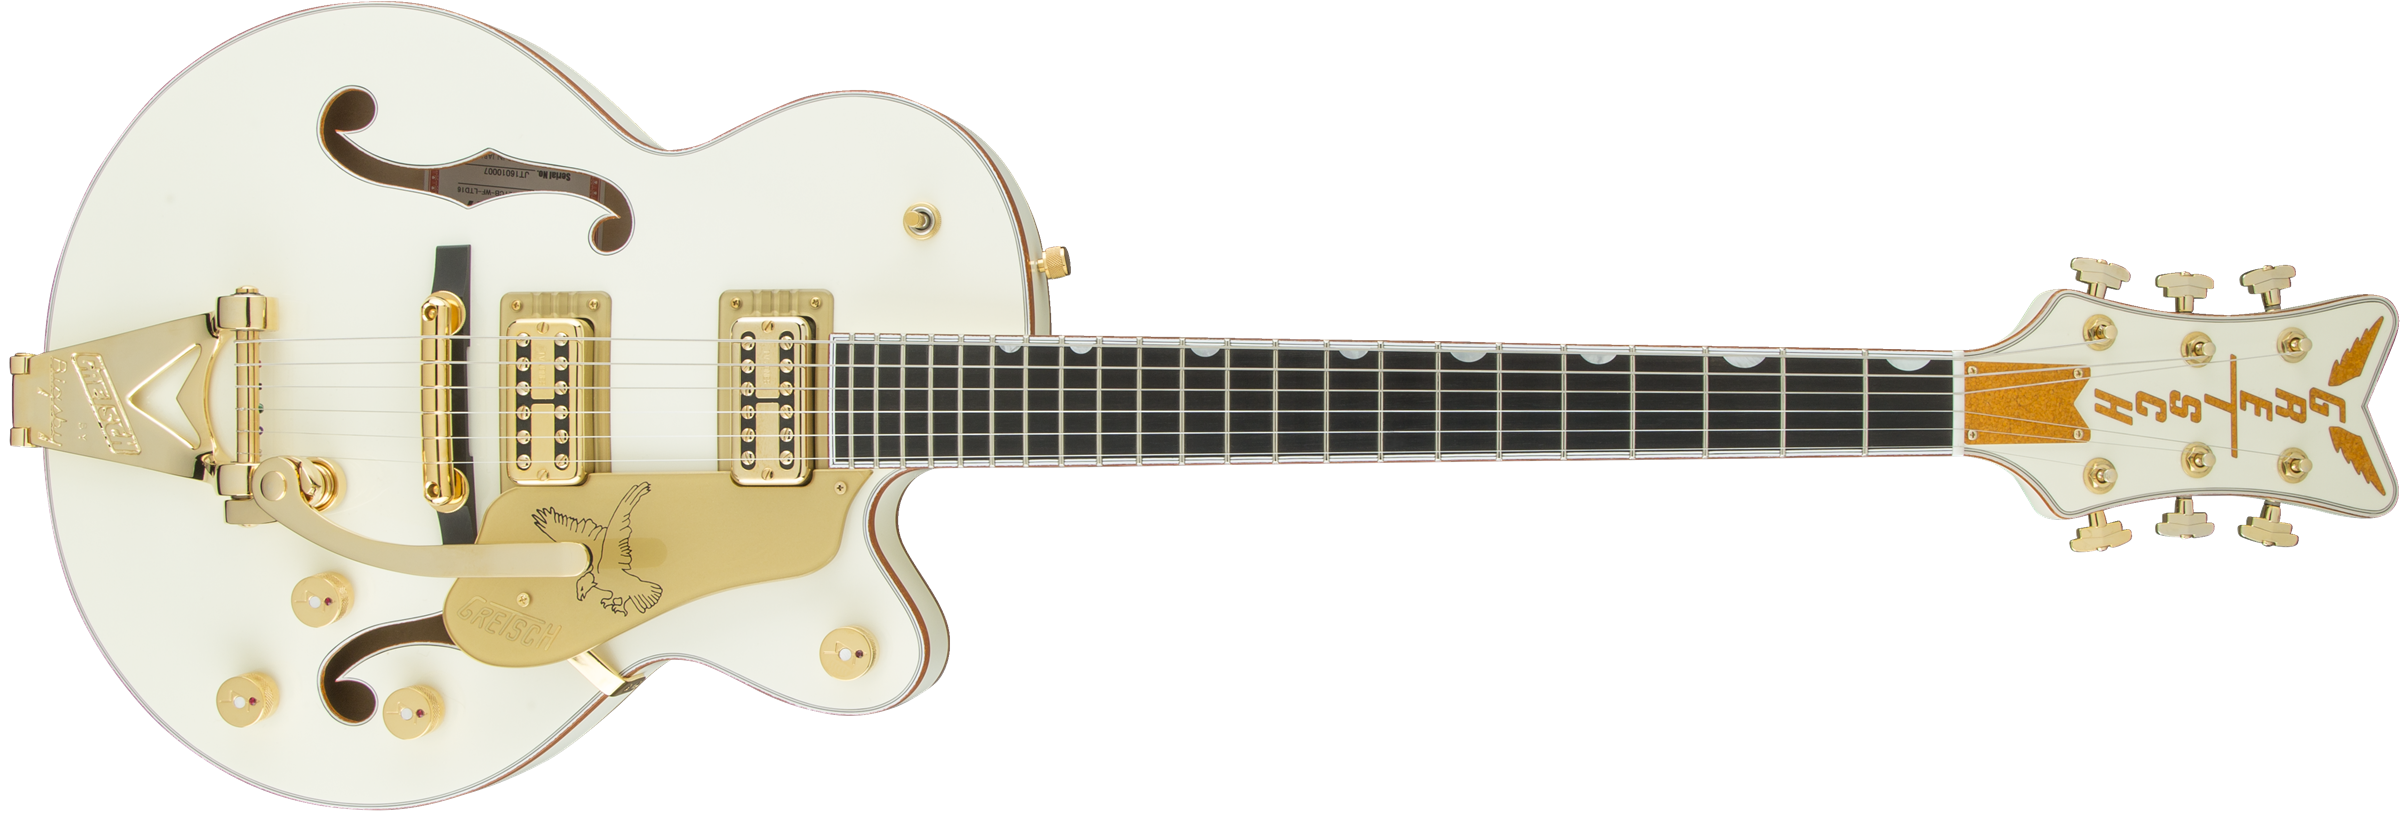 G6112TCB-WF Limited Edition Falcon™ Center Block Jr. with Bigsby®, TV Jones®, Vintage White